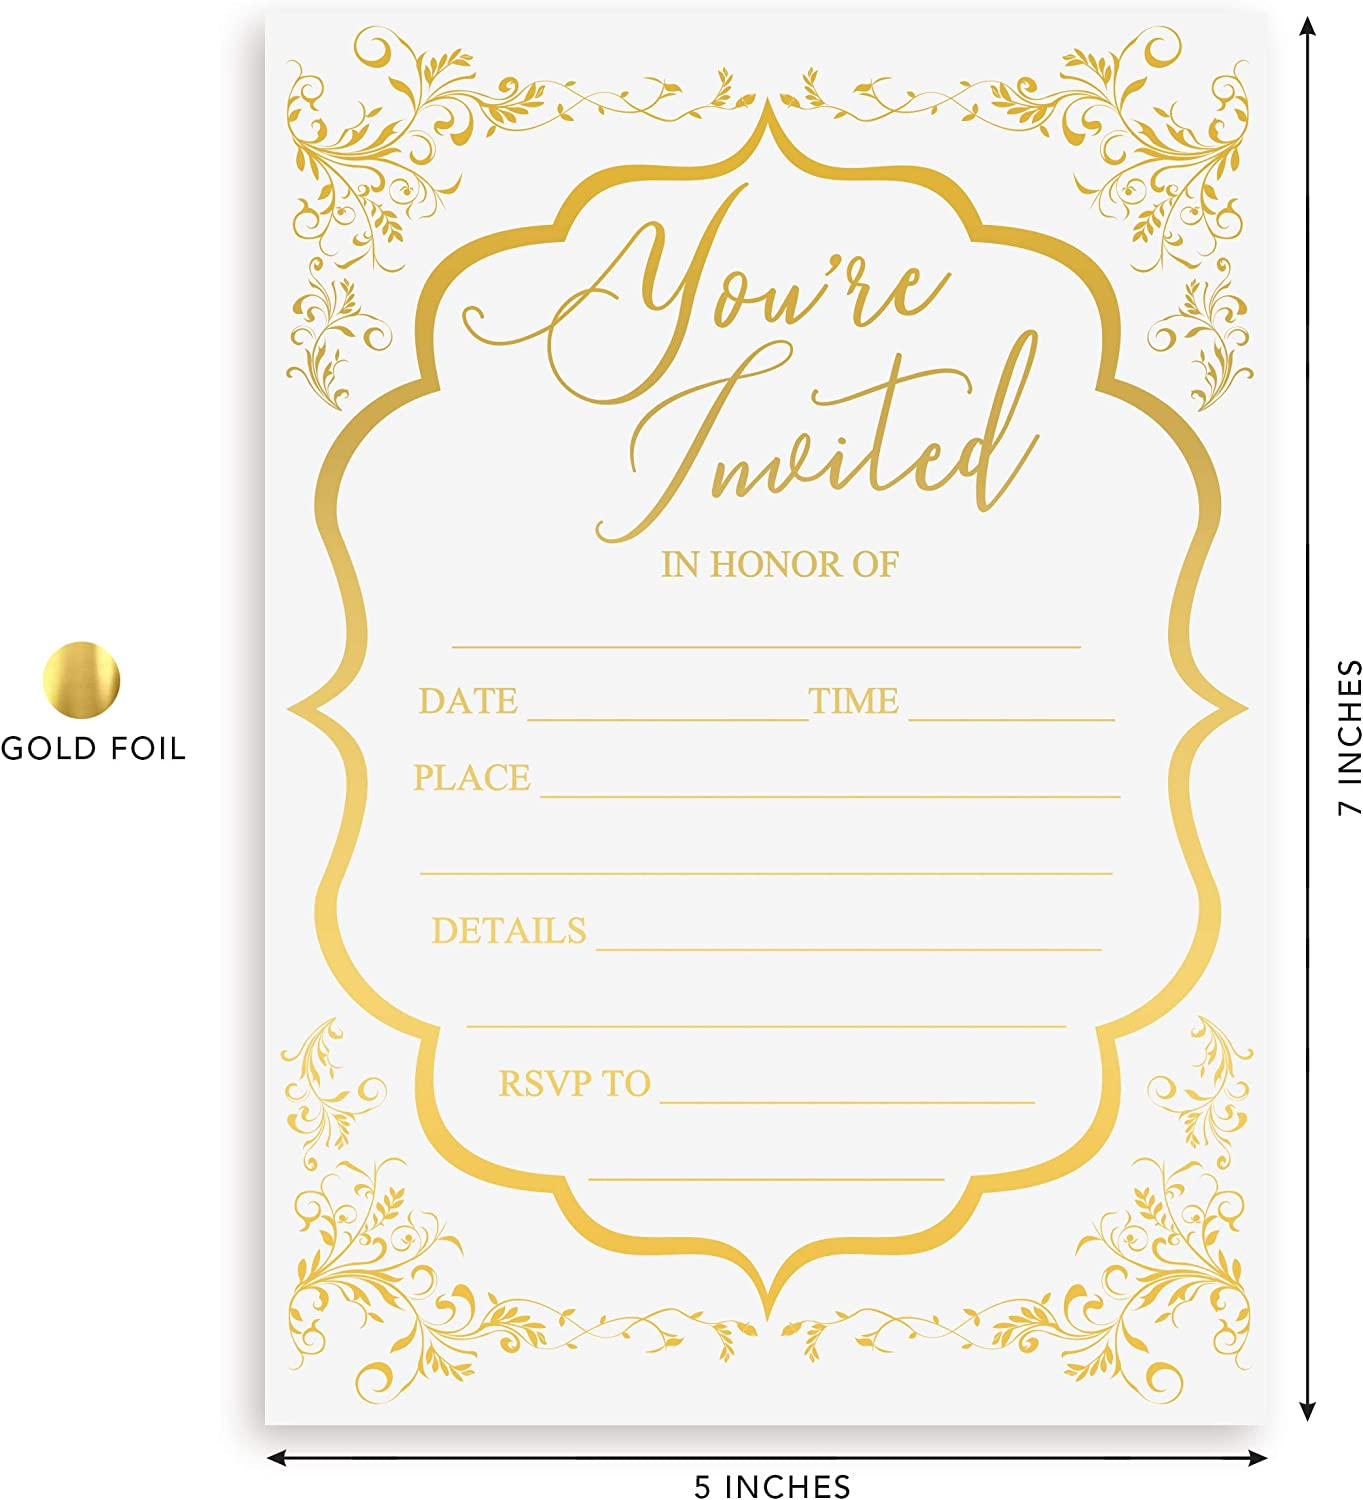 Amazon.com: Fill in Invitations Wedding, Gold Foil - 25 Pack - Wedding  Invitation, Hot Stamp Press. Party Invitations Birthday, Anniversary  Celebration, Bridal or Baby Shower (Invitation Gold 1): Health & Personal  Care